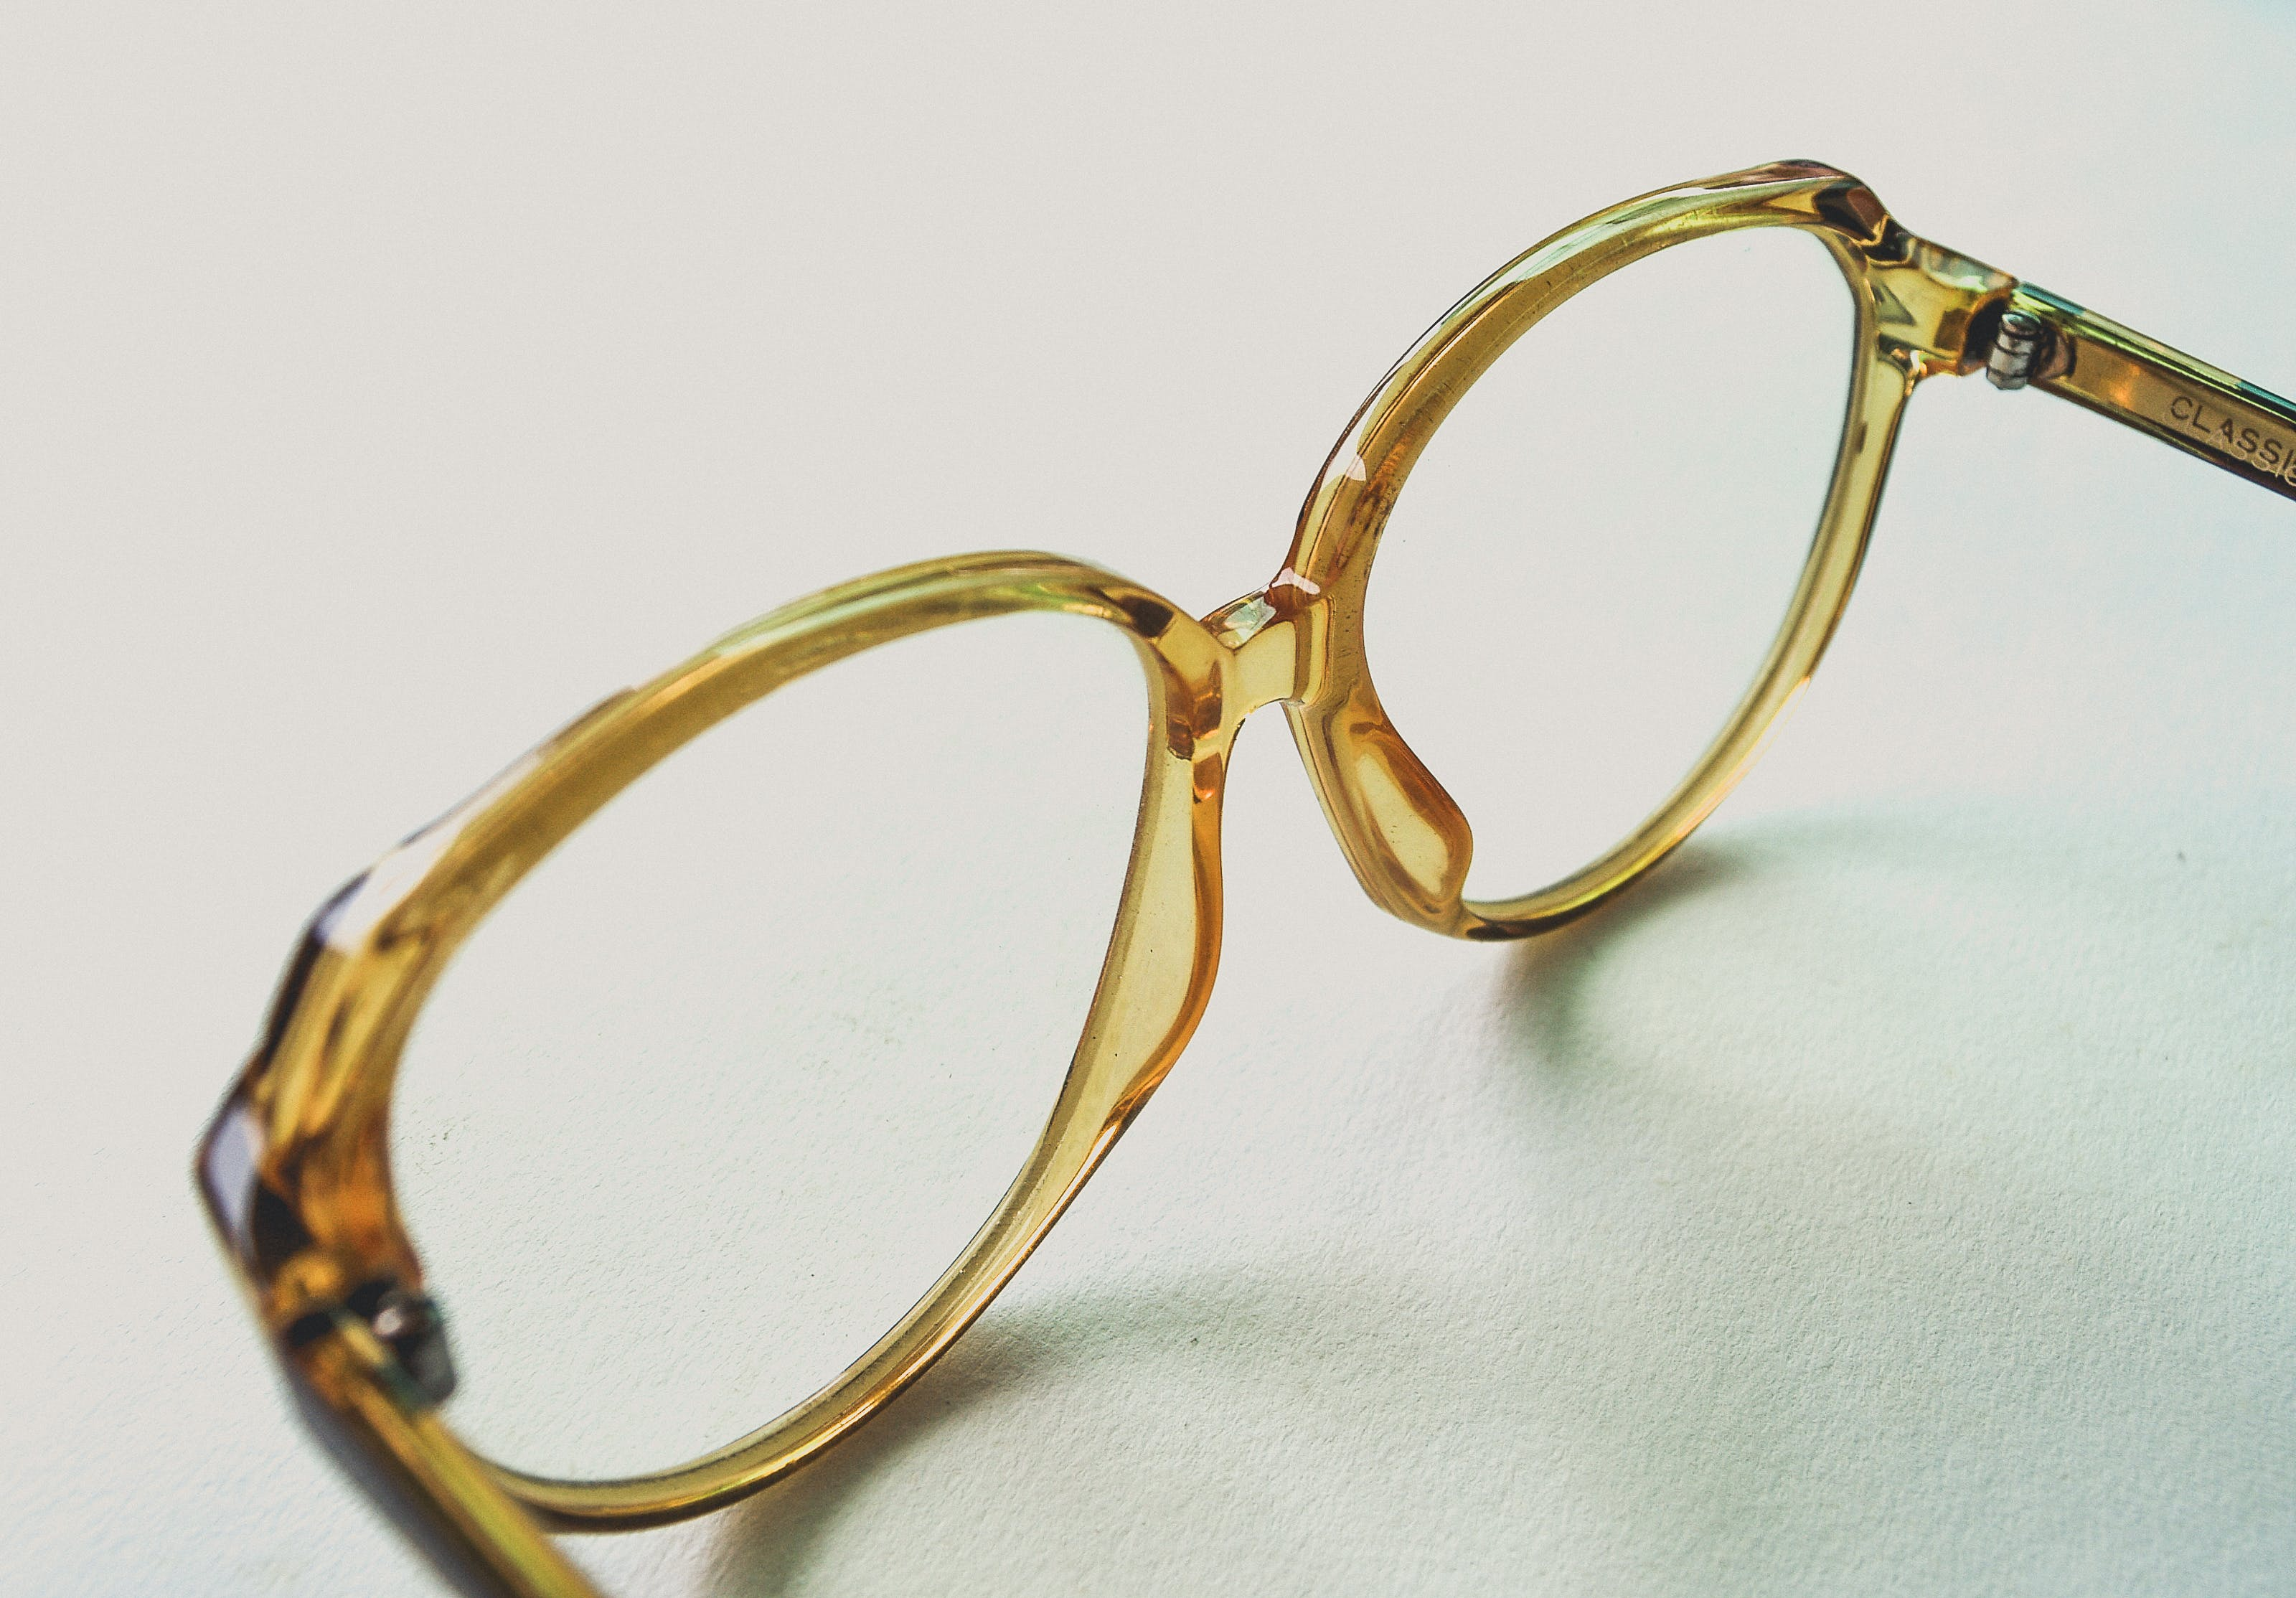 Yellow Frame Eyeglasses on White Surface